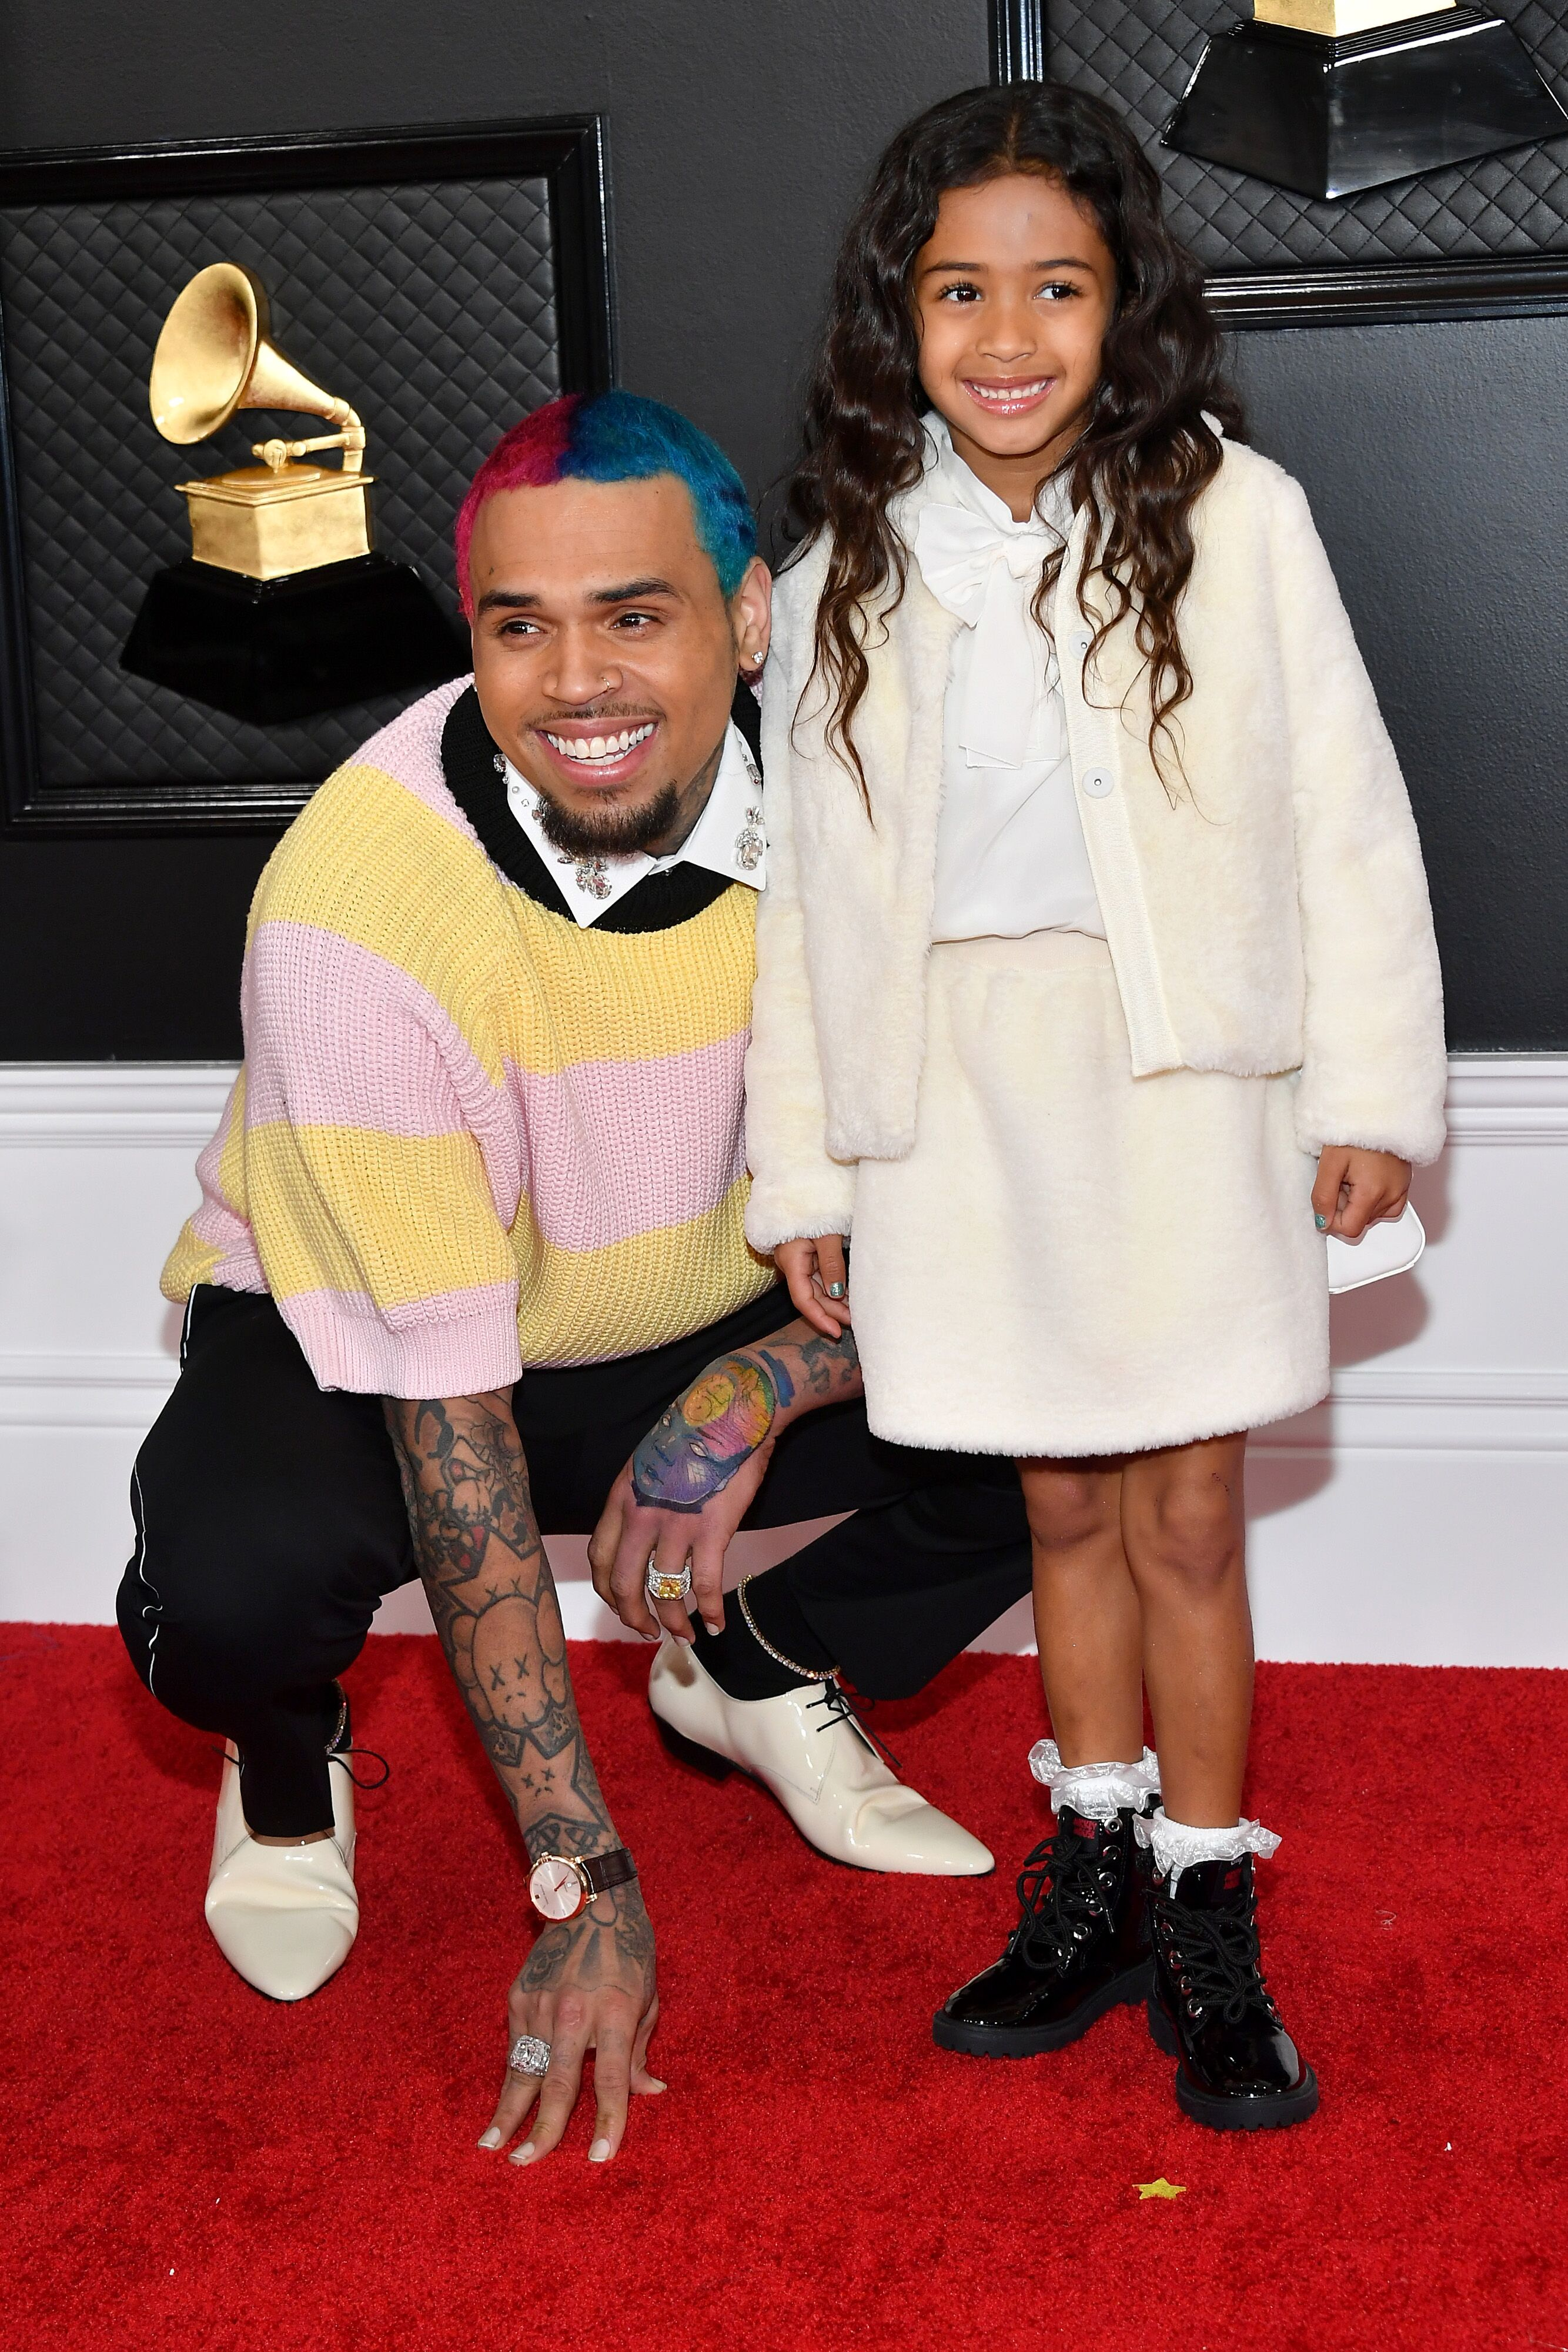 Chris Brown and Royalty Brown attend the 62nd Annual GRAMMY Awards at Staples Center on January 26, 2020 | Photo: Getty Images